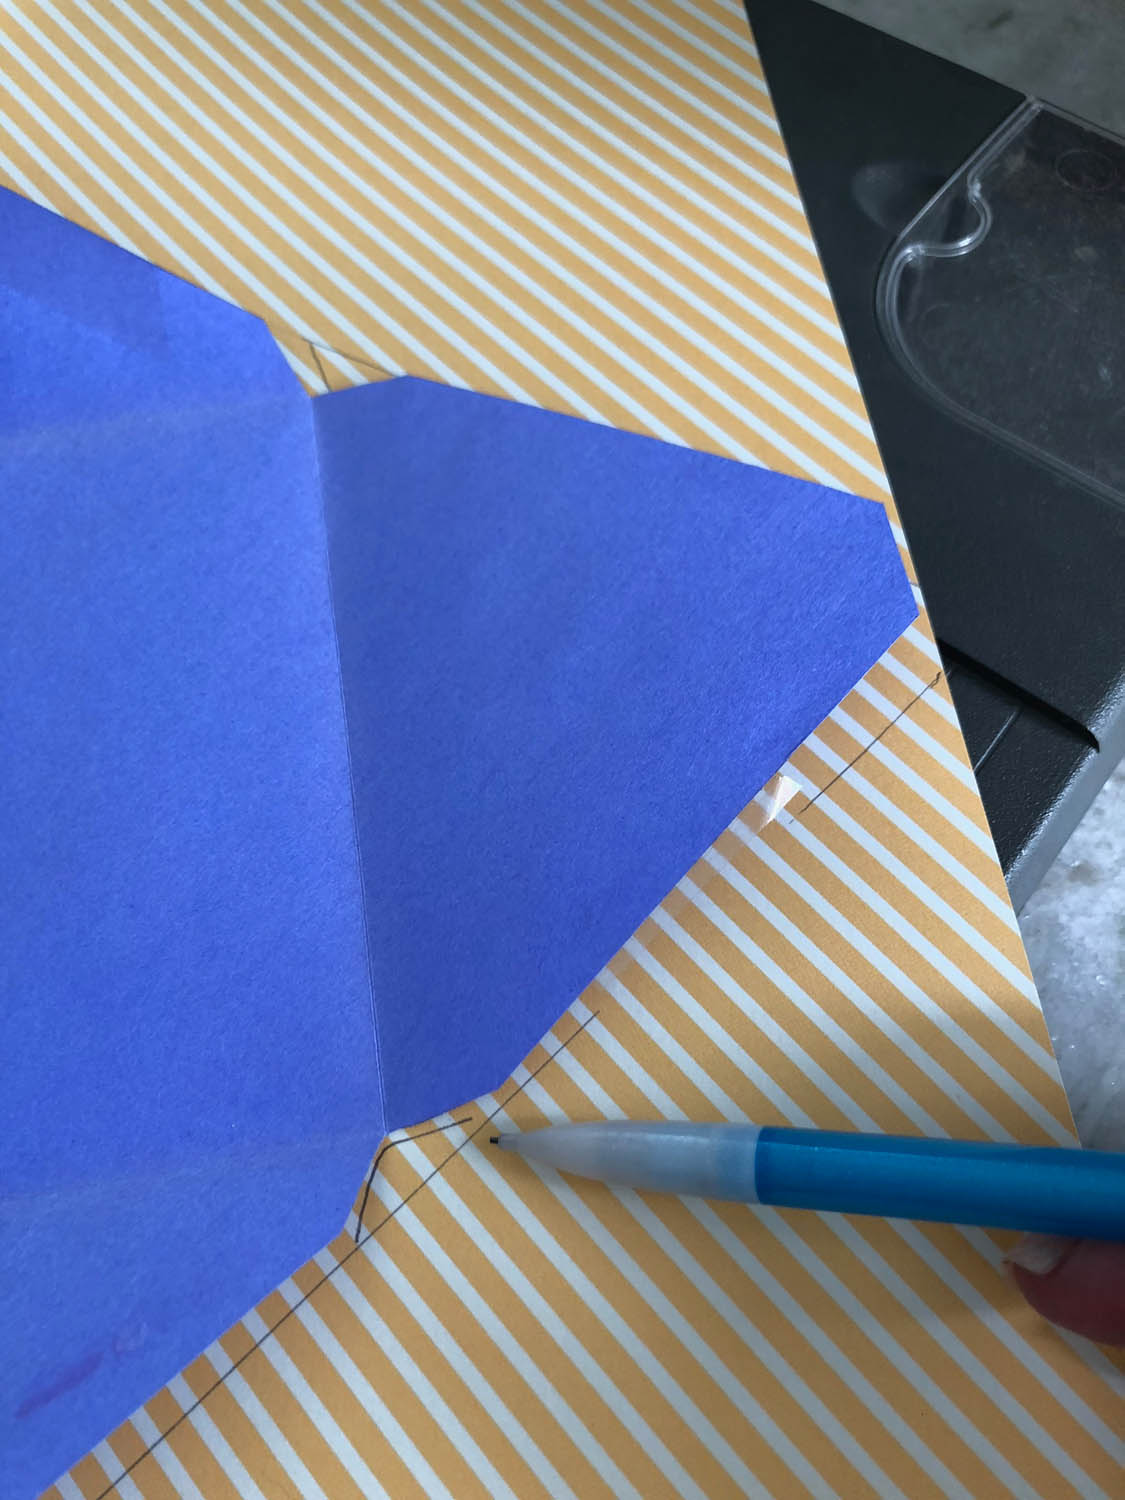 tracing on scrapbook paper for diy envelopes with scrapbook paper